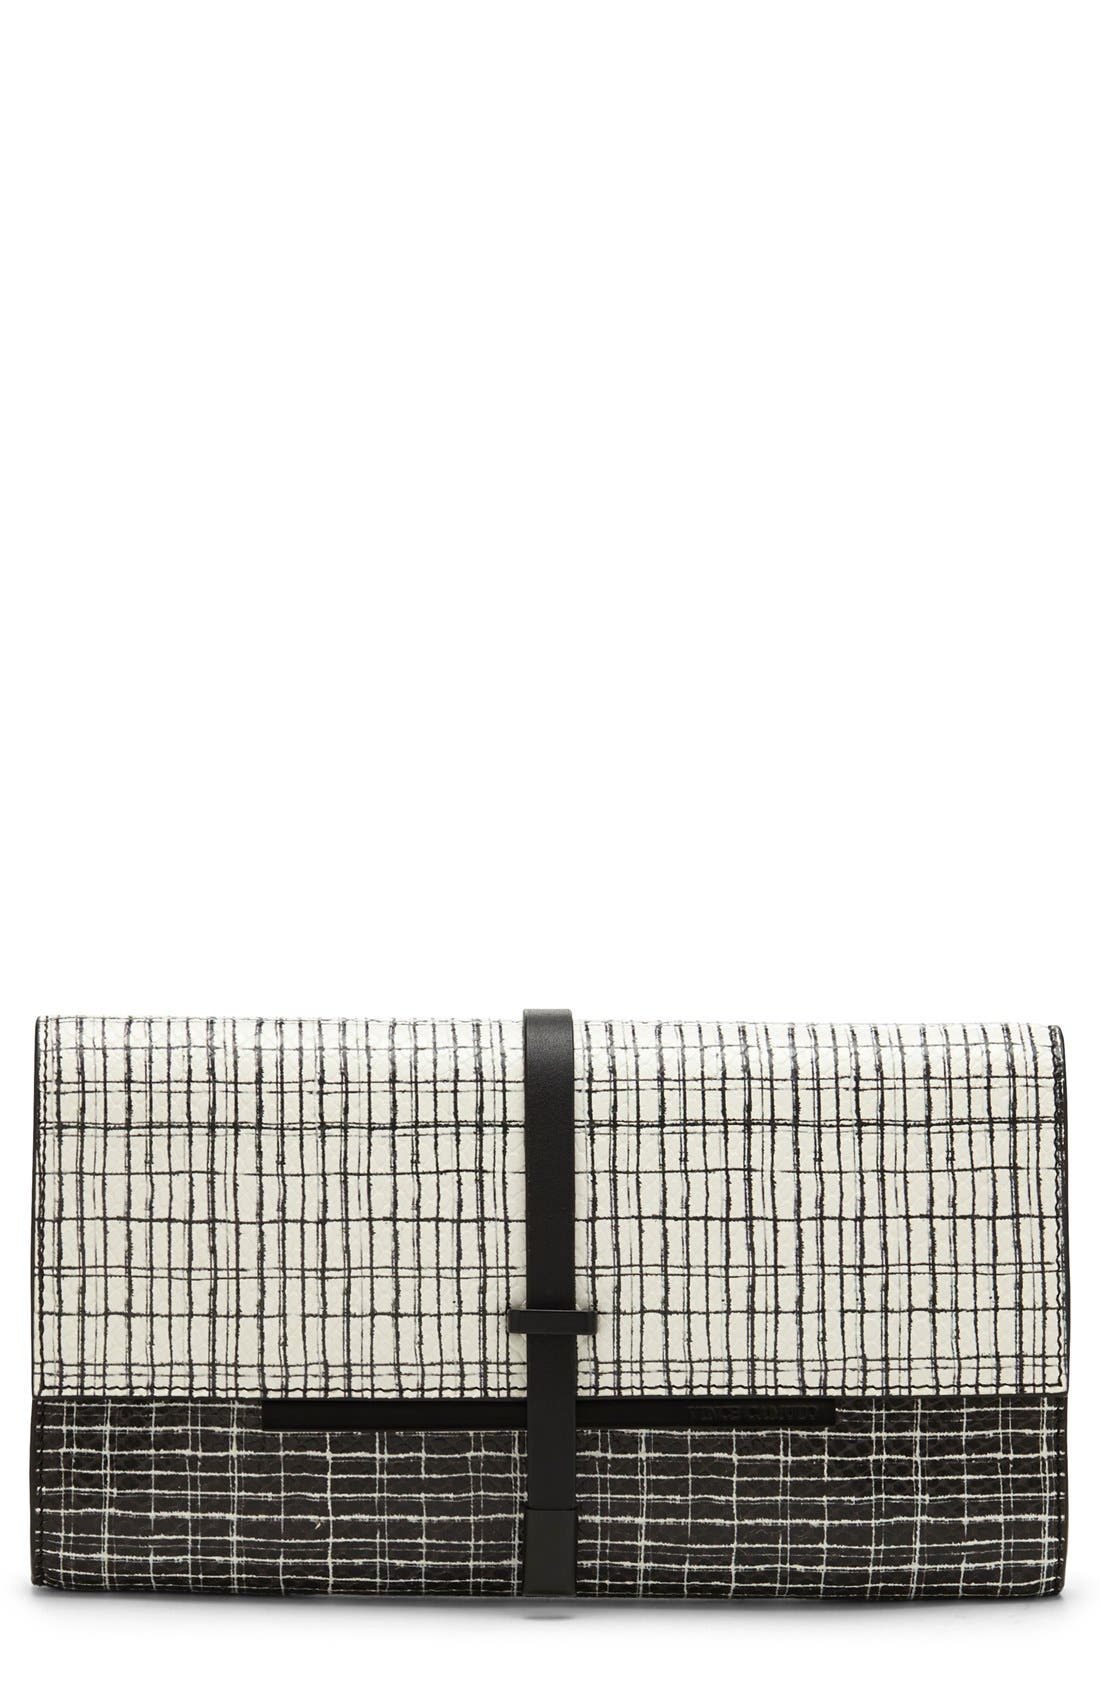 Alternate Image 1 Selected - Vince Camuto 'Leila' Clutch